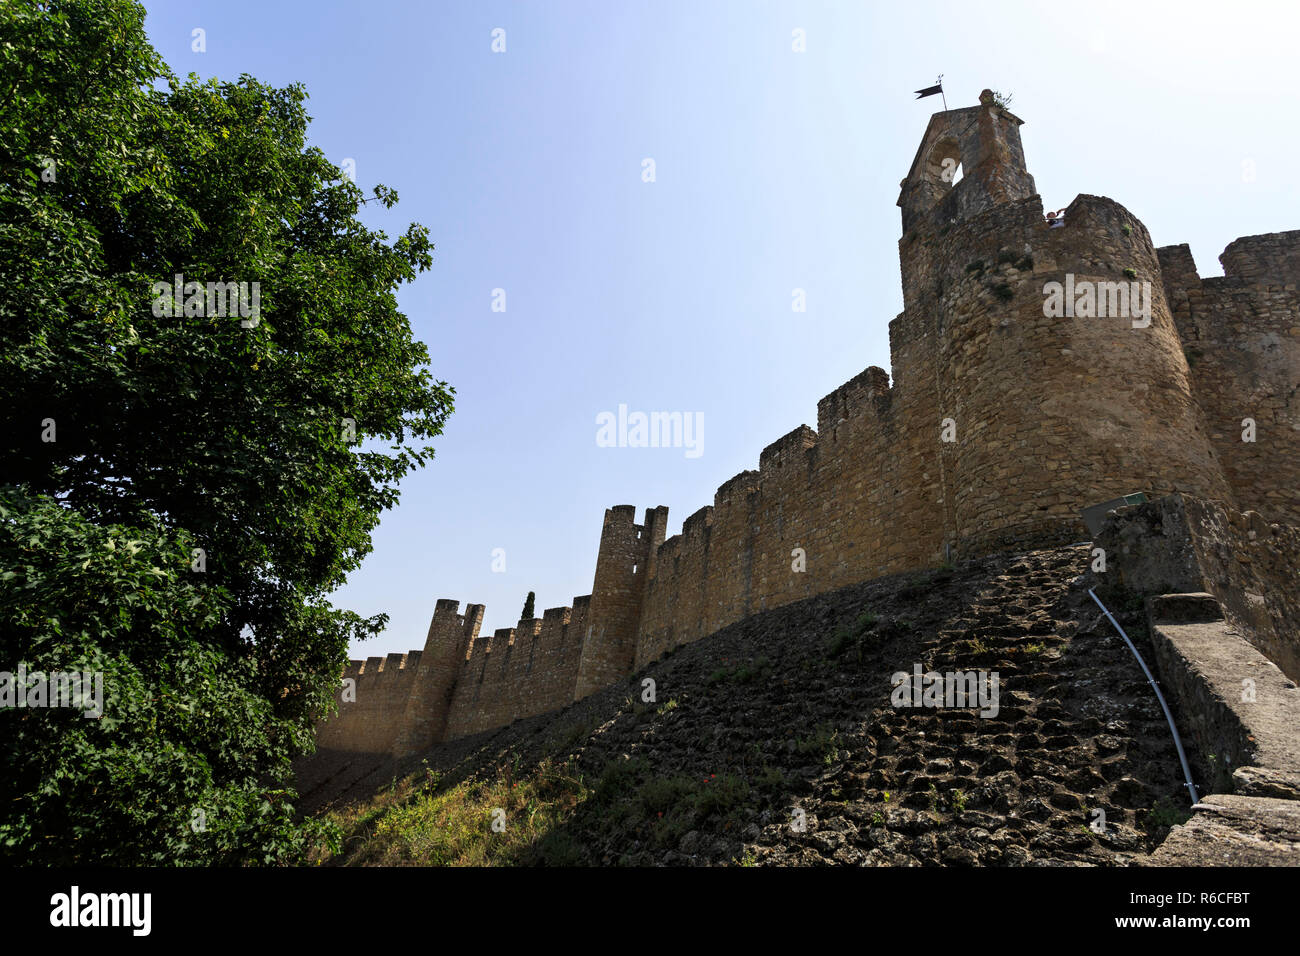 View of the medieval castle built in the 12th century by the Templar Knights to secure the border against the Moors, in Tomar, Portugal - Stock Image